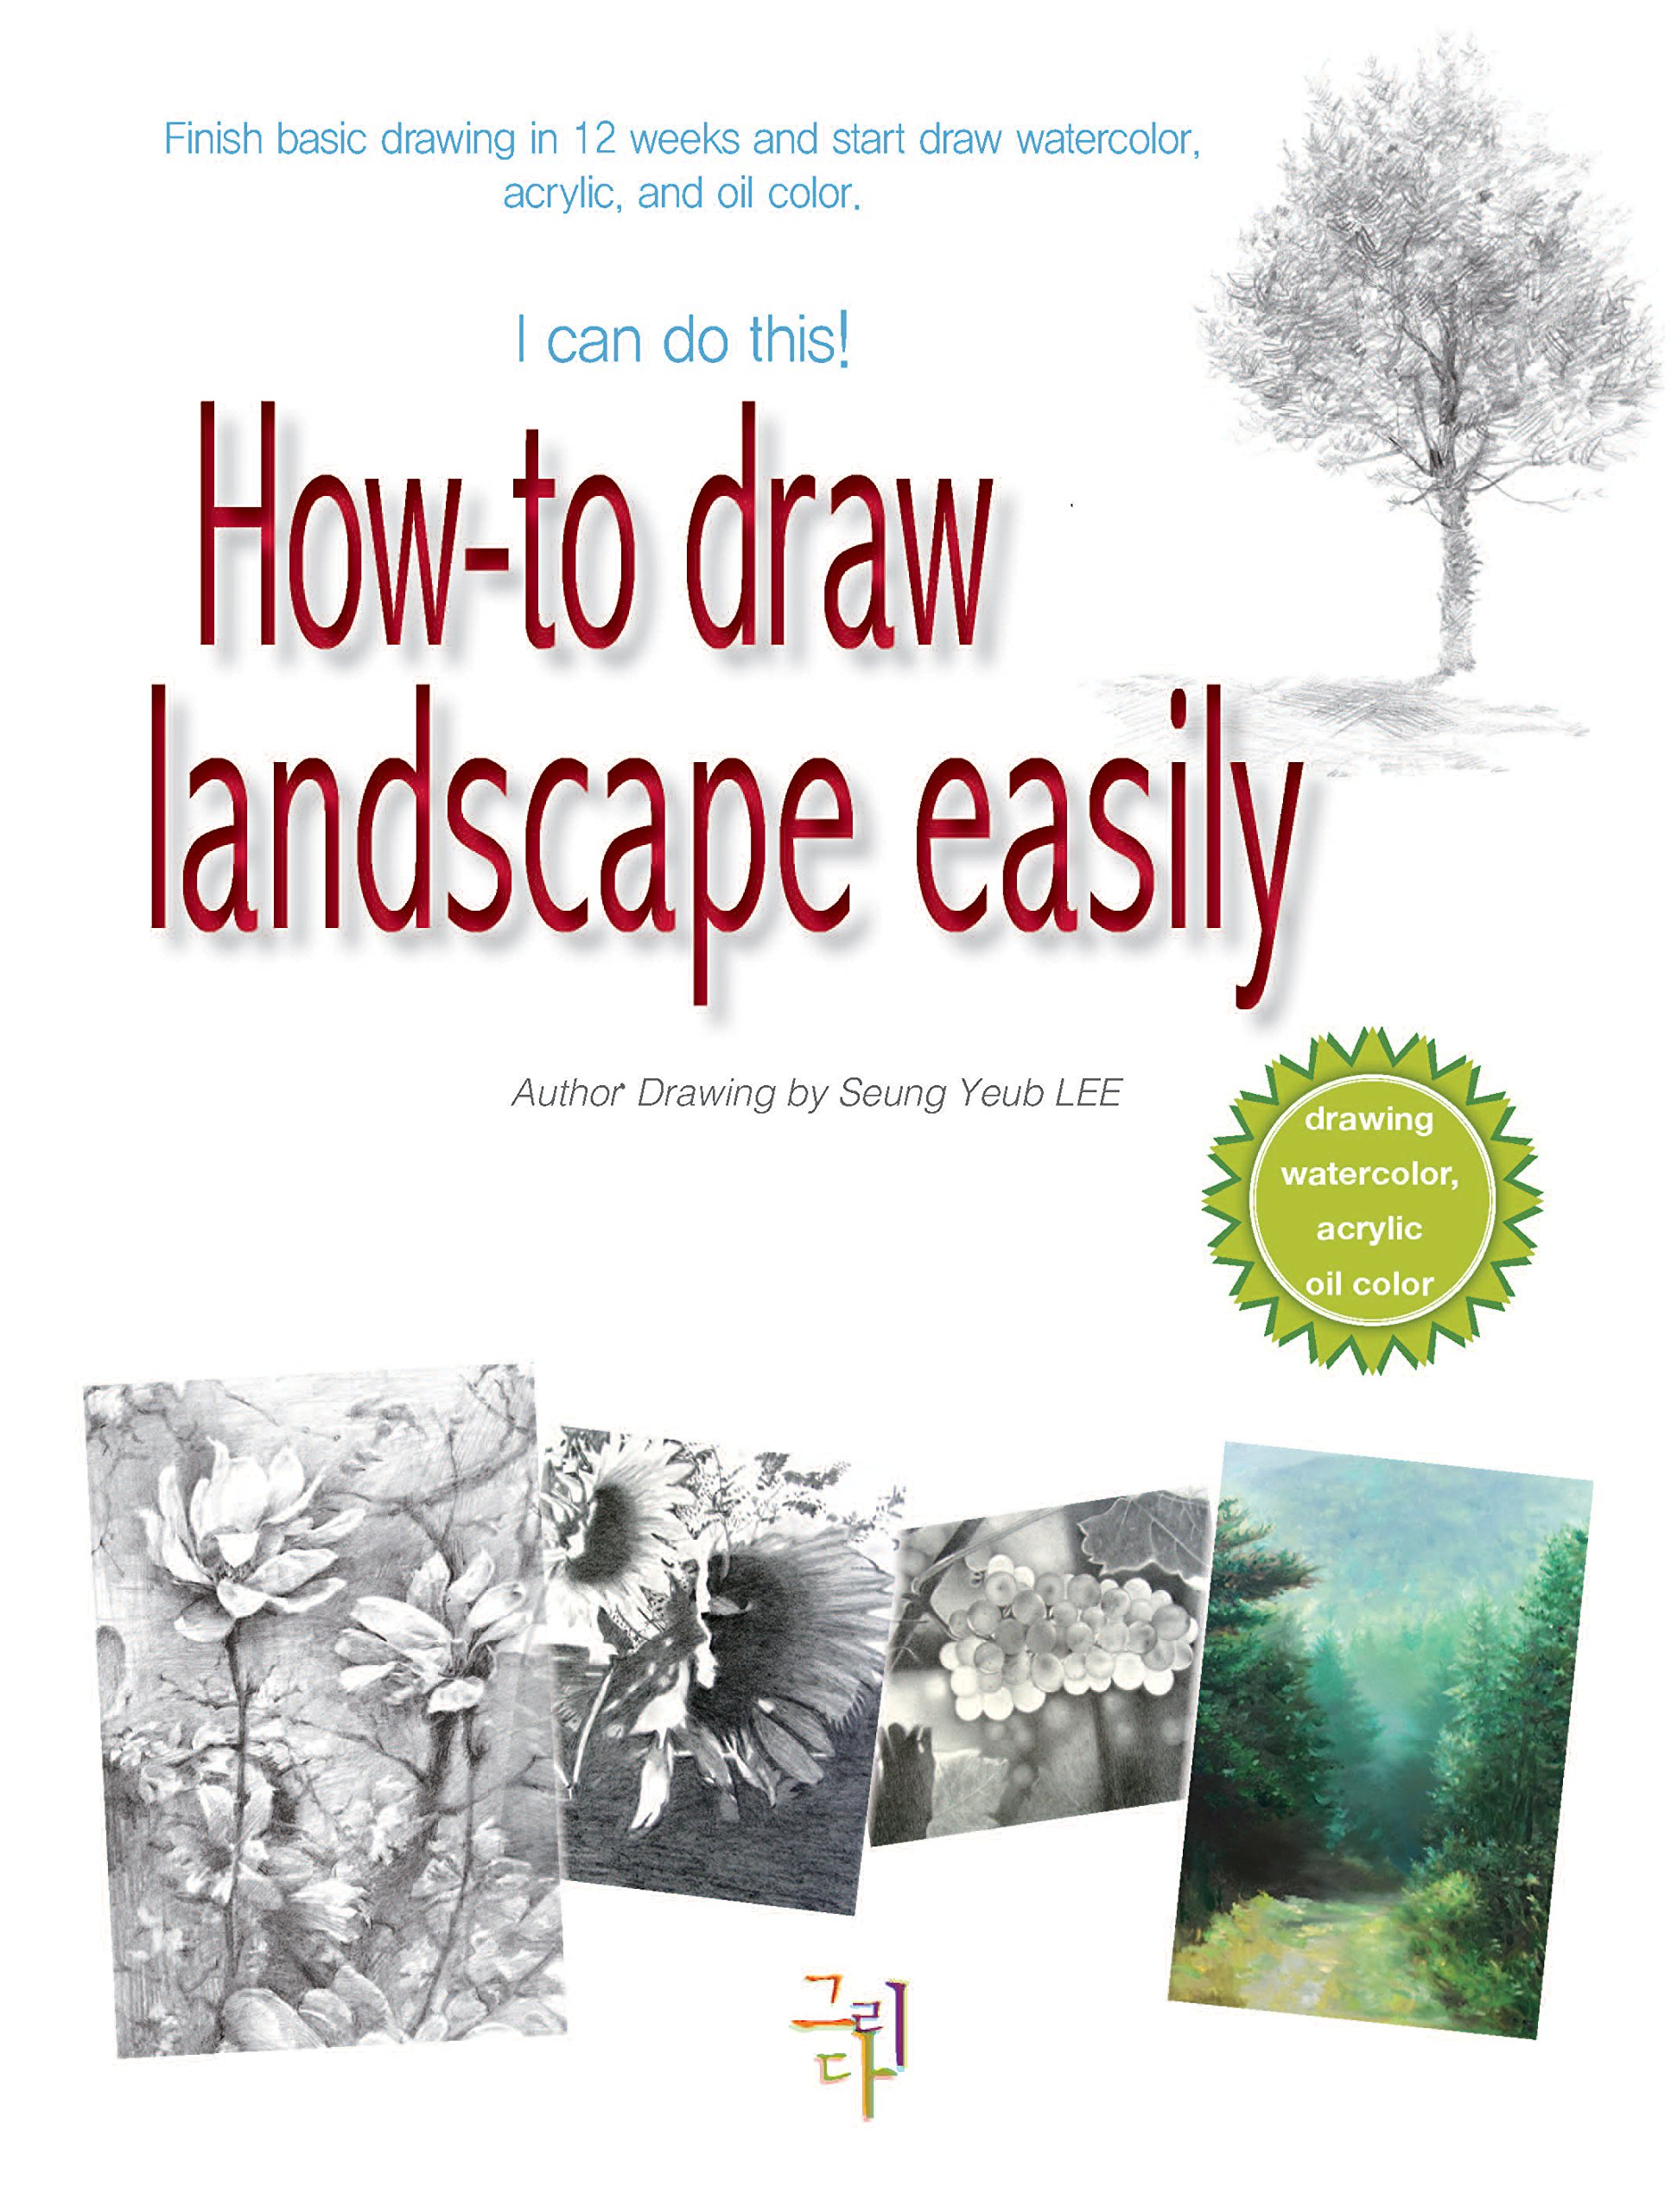 How To Draw Landscape Easily  Finish Basic Drawing In 12 Weeks And Start Draw Watercolor Acrylic And Oil Color.  English Edition